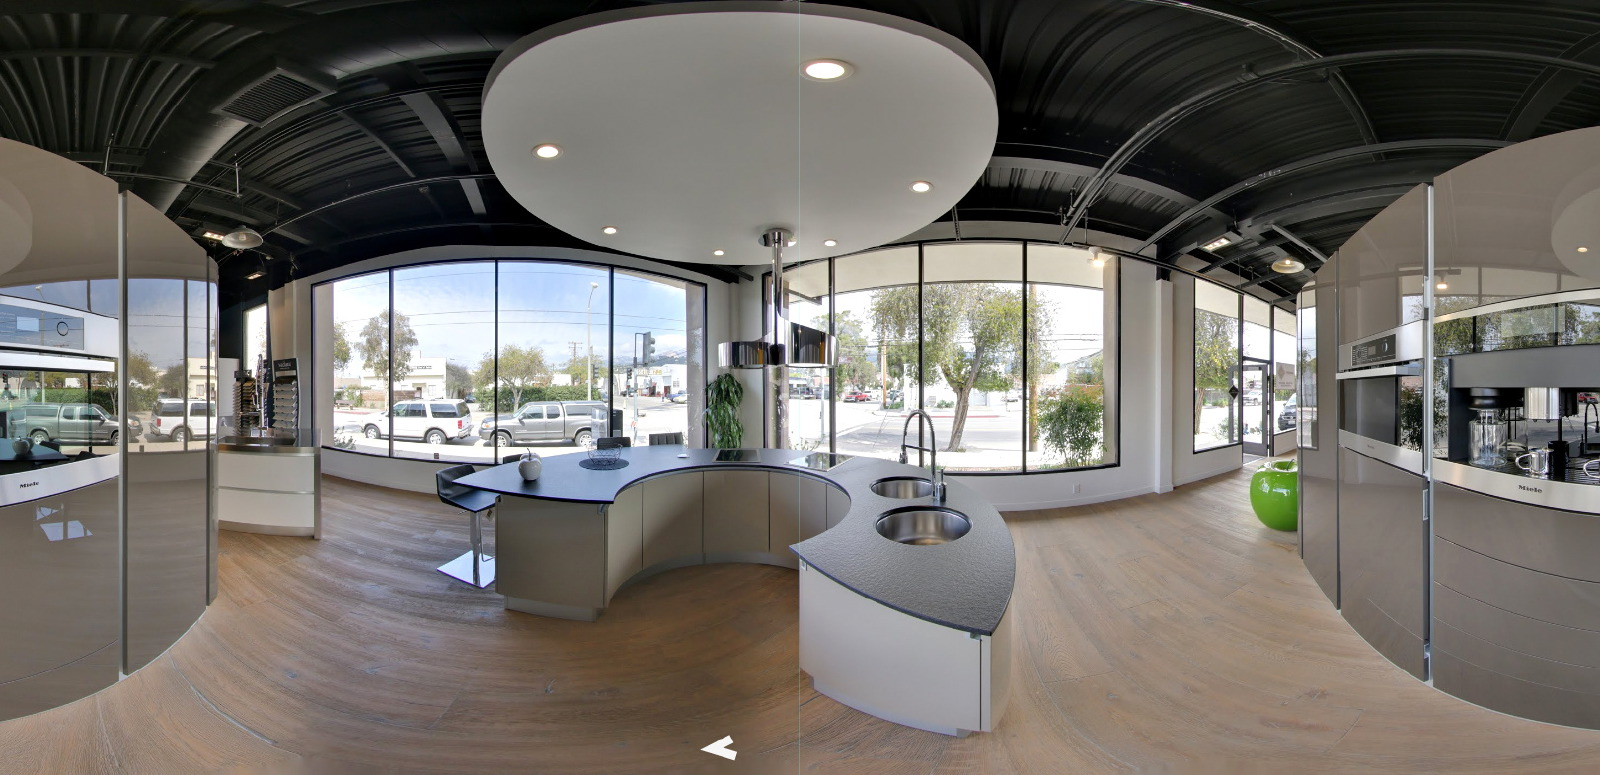 Google virtual tour with street view technology made by 805 Productions Santa Barbara